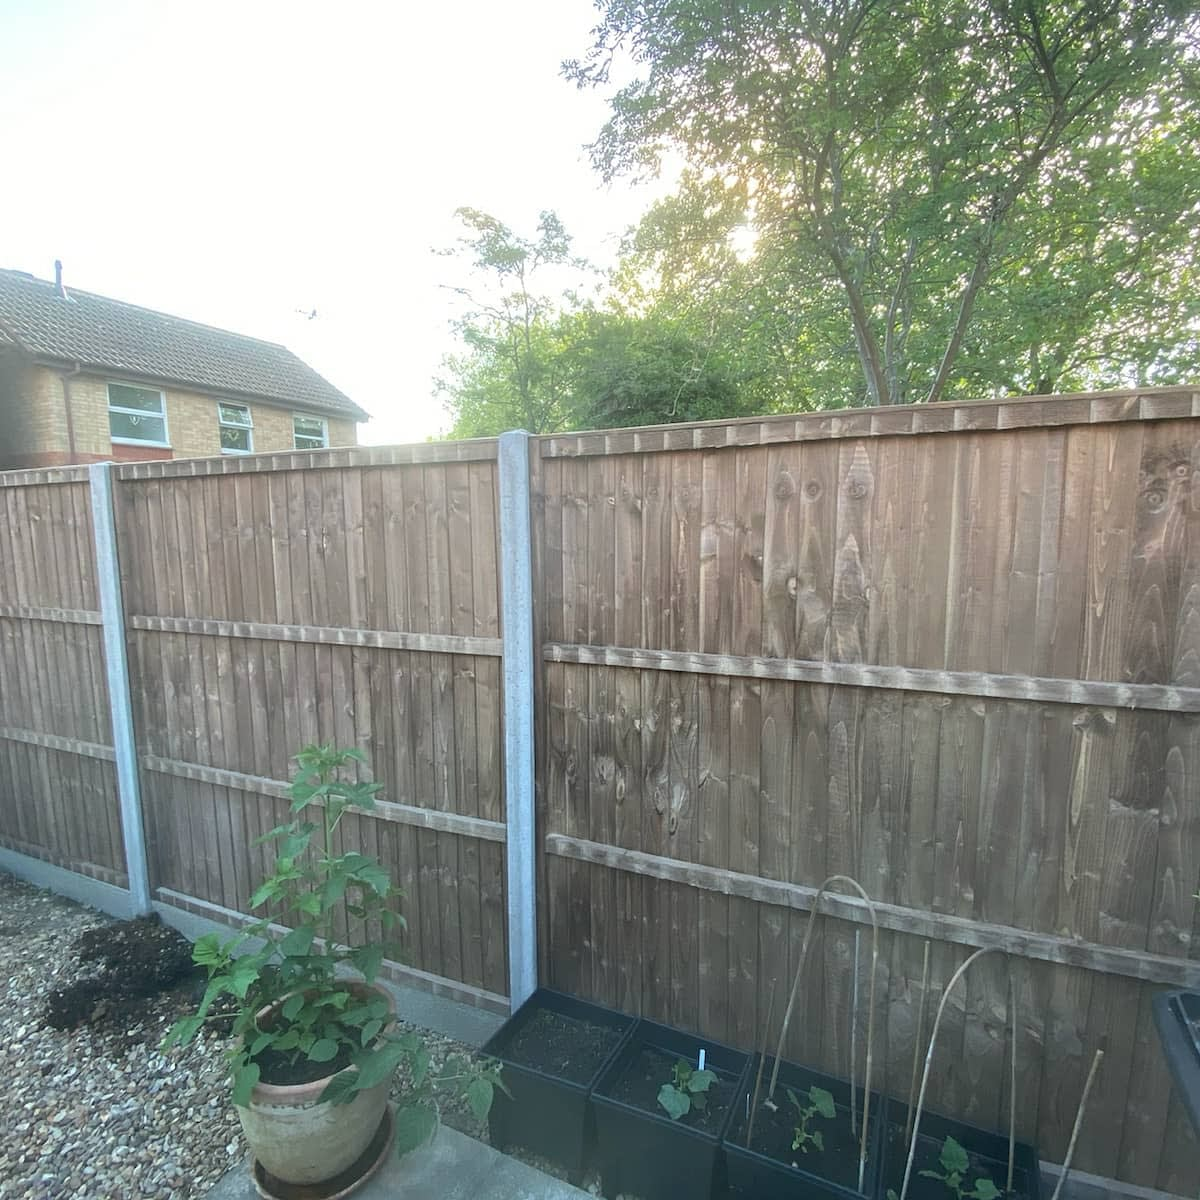 New Featheredge Fencing installed in Werrington